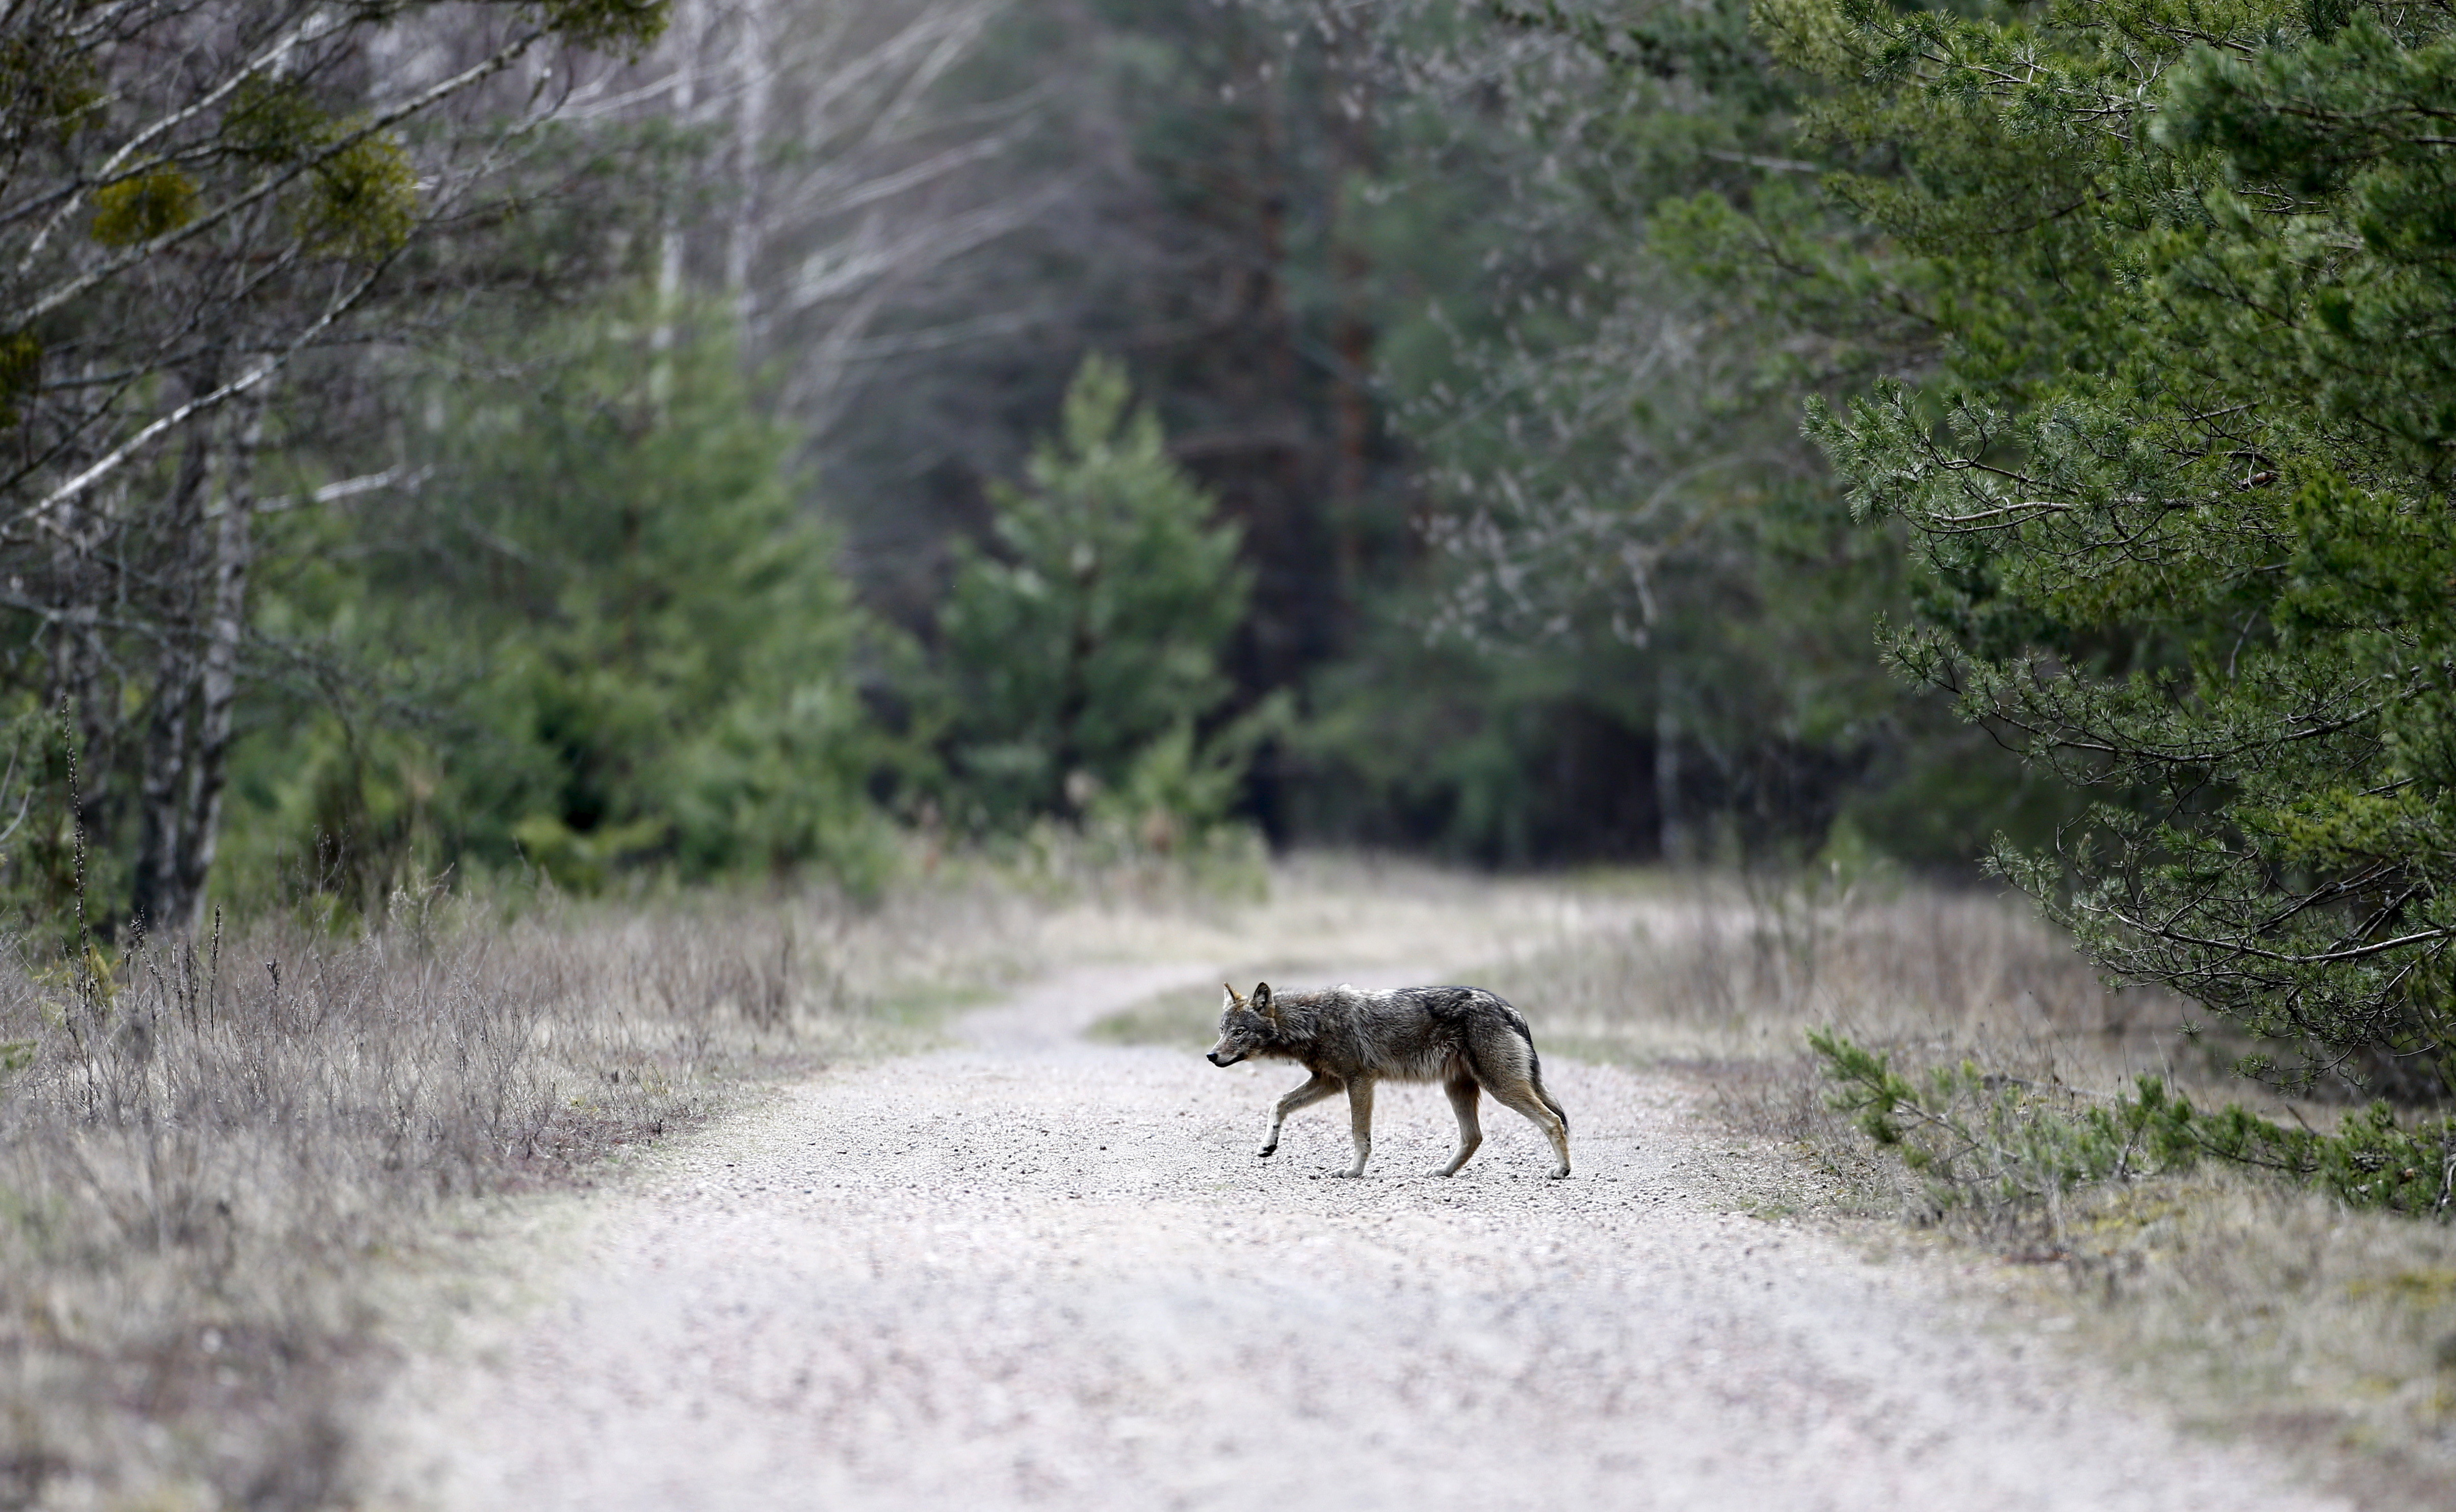 A wolf crosses a road in a forest in the 30 km (19 miles) exclusion zone around the Chernobyl nuclear reactor near the abandoned village of Dronki, Belarus, April 2, 2016. What happens to the environment when humans disappear? Thirty years after the Chernobyl nuclear disaster, booming populations of wolf, elk and other wildlife in the vast contaminated zone in Belarus and Ukraine provide a clue. On April 26, 1986, a botched test at the nuclear plant in Ukraine, then a Soviet republic, sent clouds of smouldering radioactive material across large swathes of Europe. Over 100,000 people had to abandon the area permanently, leaving native animals the sole occupants of a cross-border